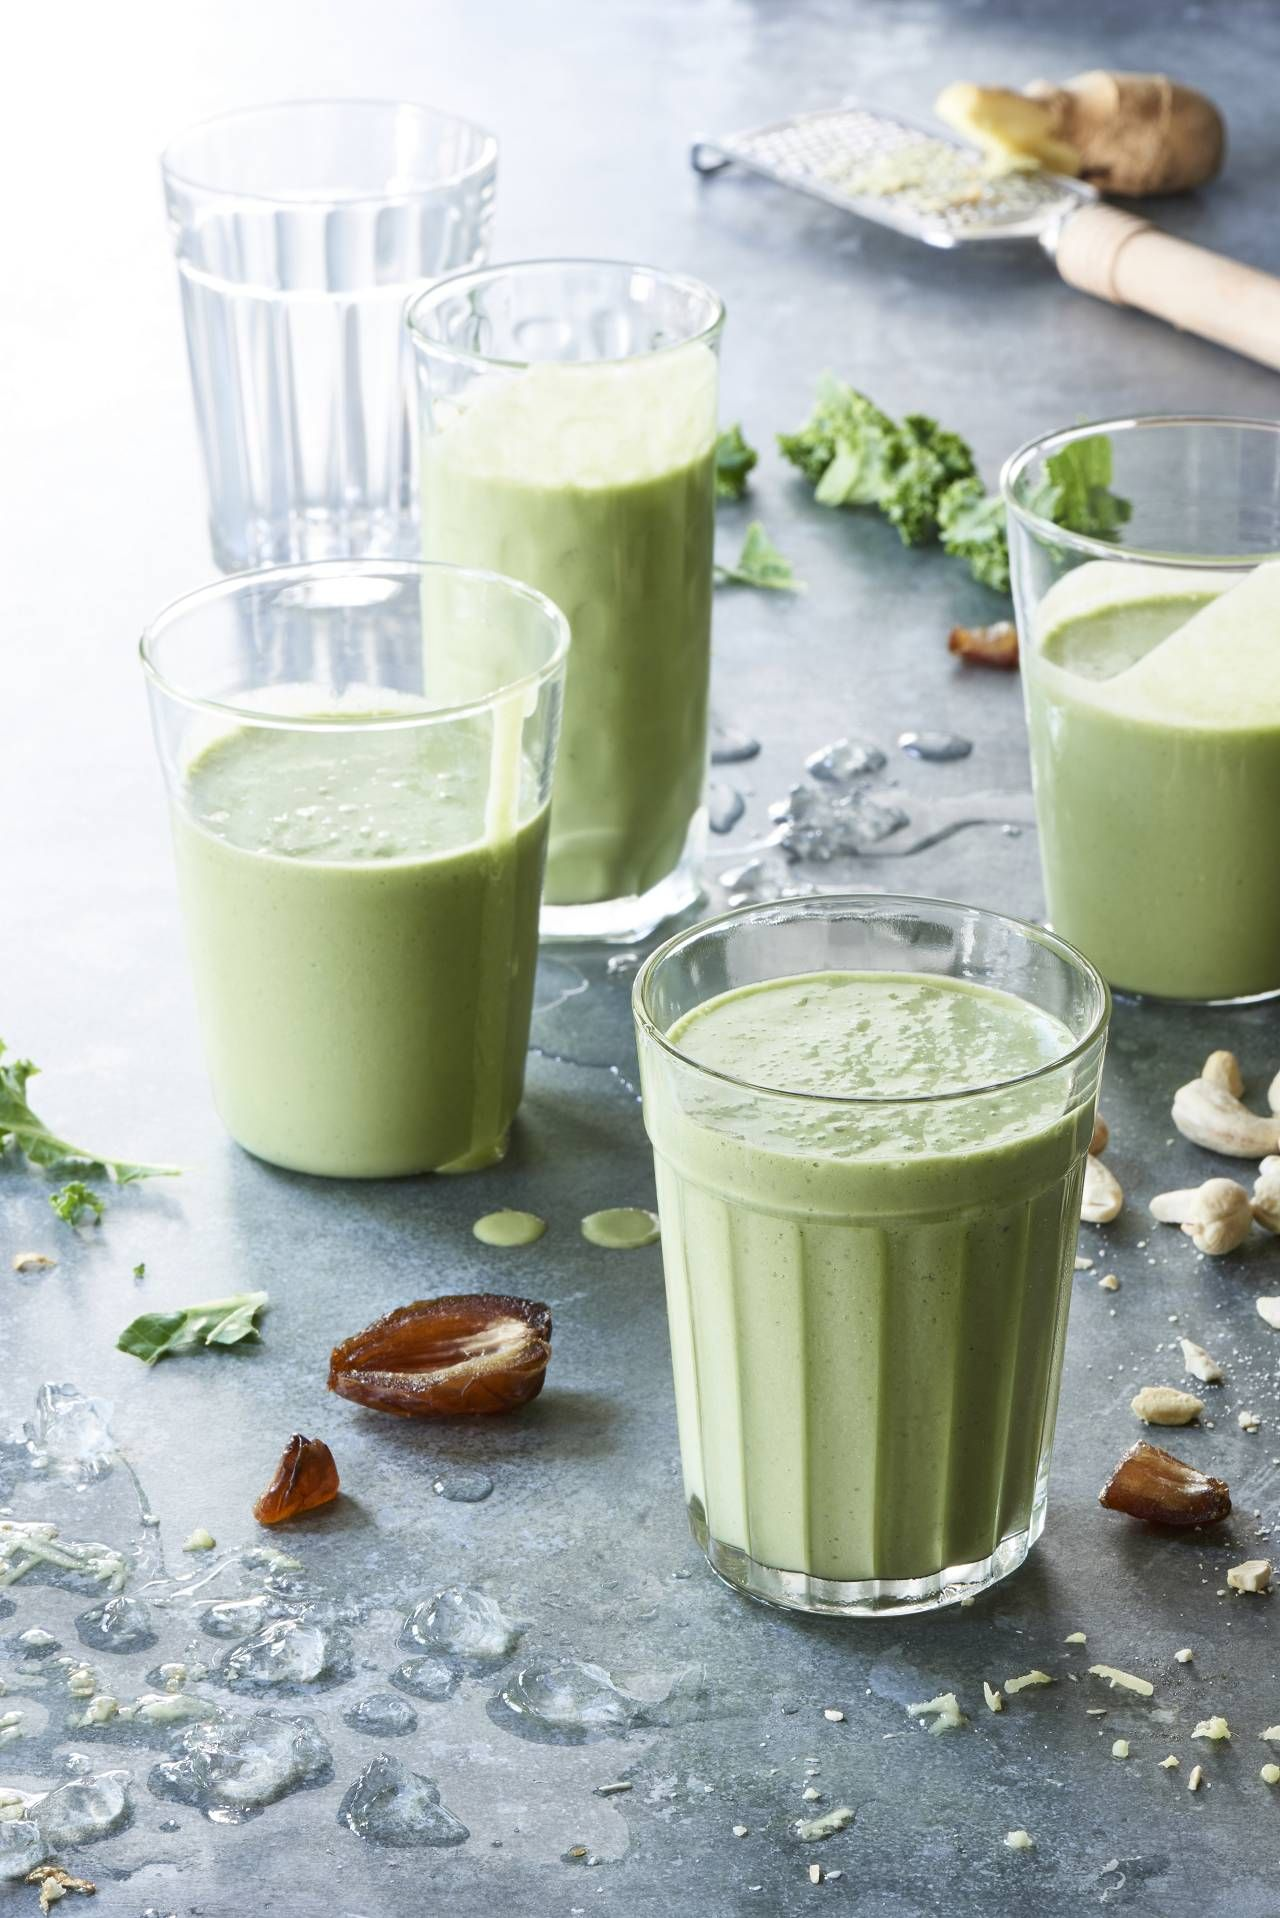 Tastes-Like-Ice-Cream Kale Green Smoothie - This is the famous tastes like ice cream kale smoothie from The Blender Girl cookbook and The Blender Girl Smoothies app.